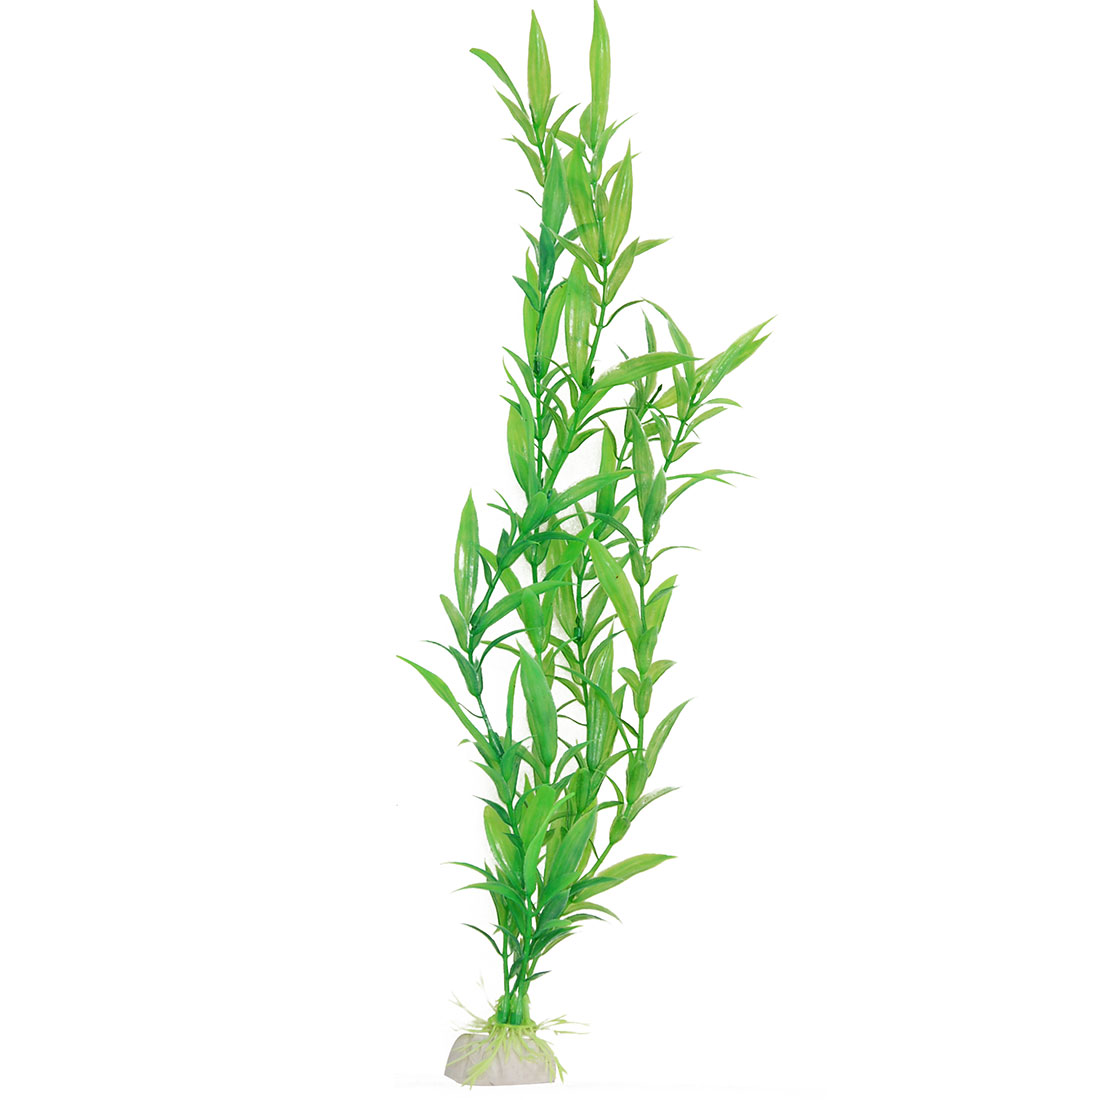 Aquarium Green Plant Plastic Fish Tank Grass Ornament Decor